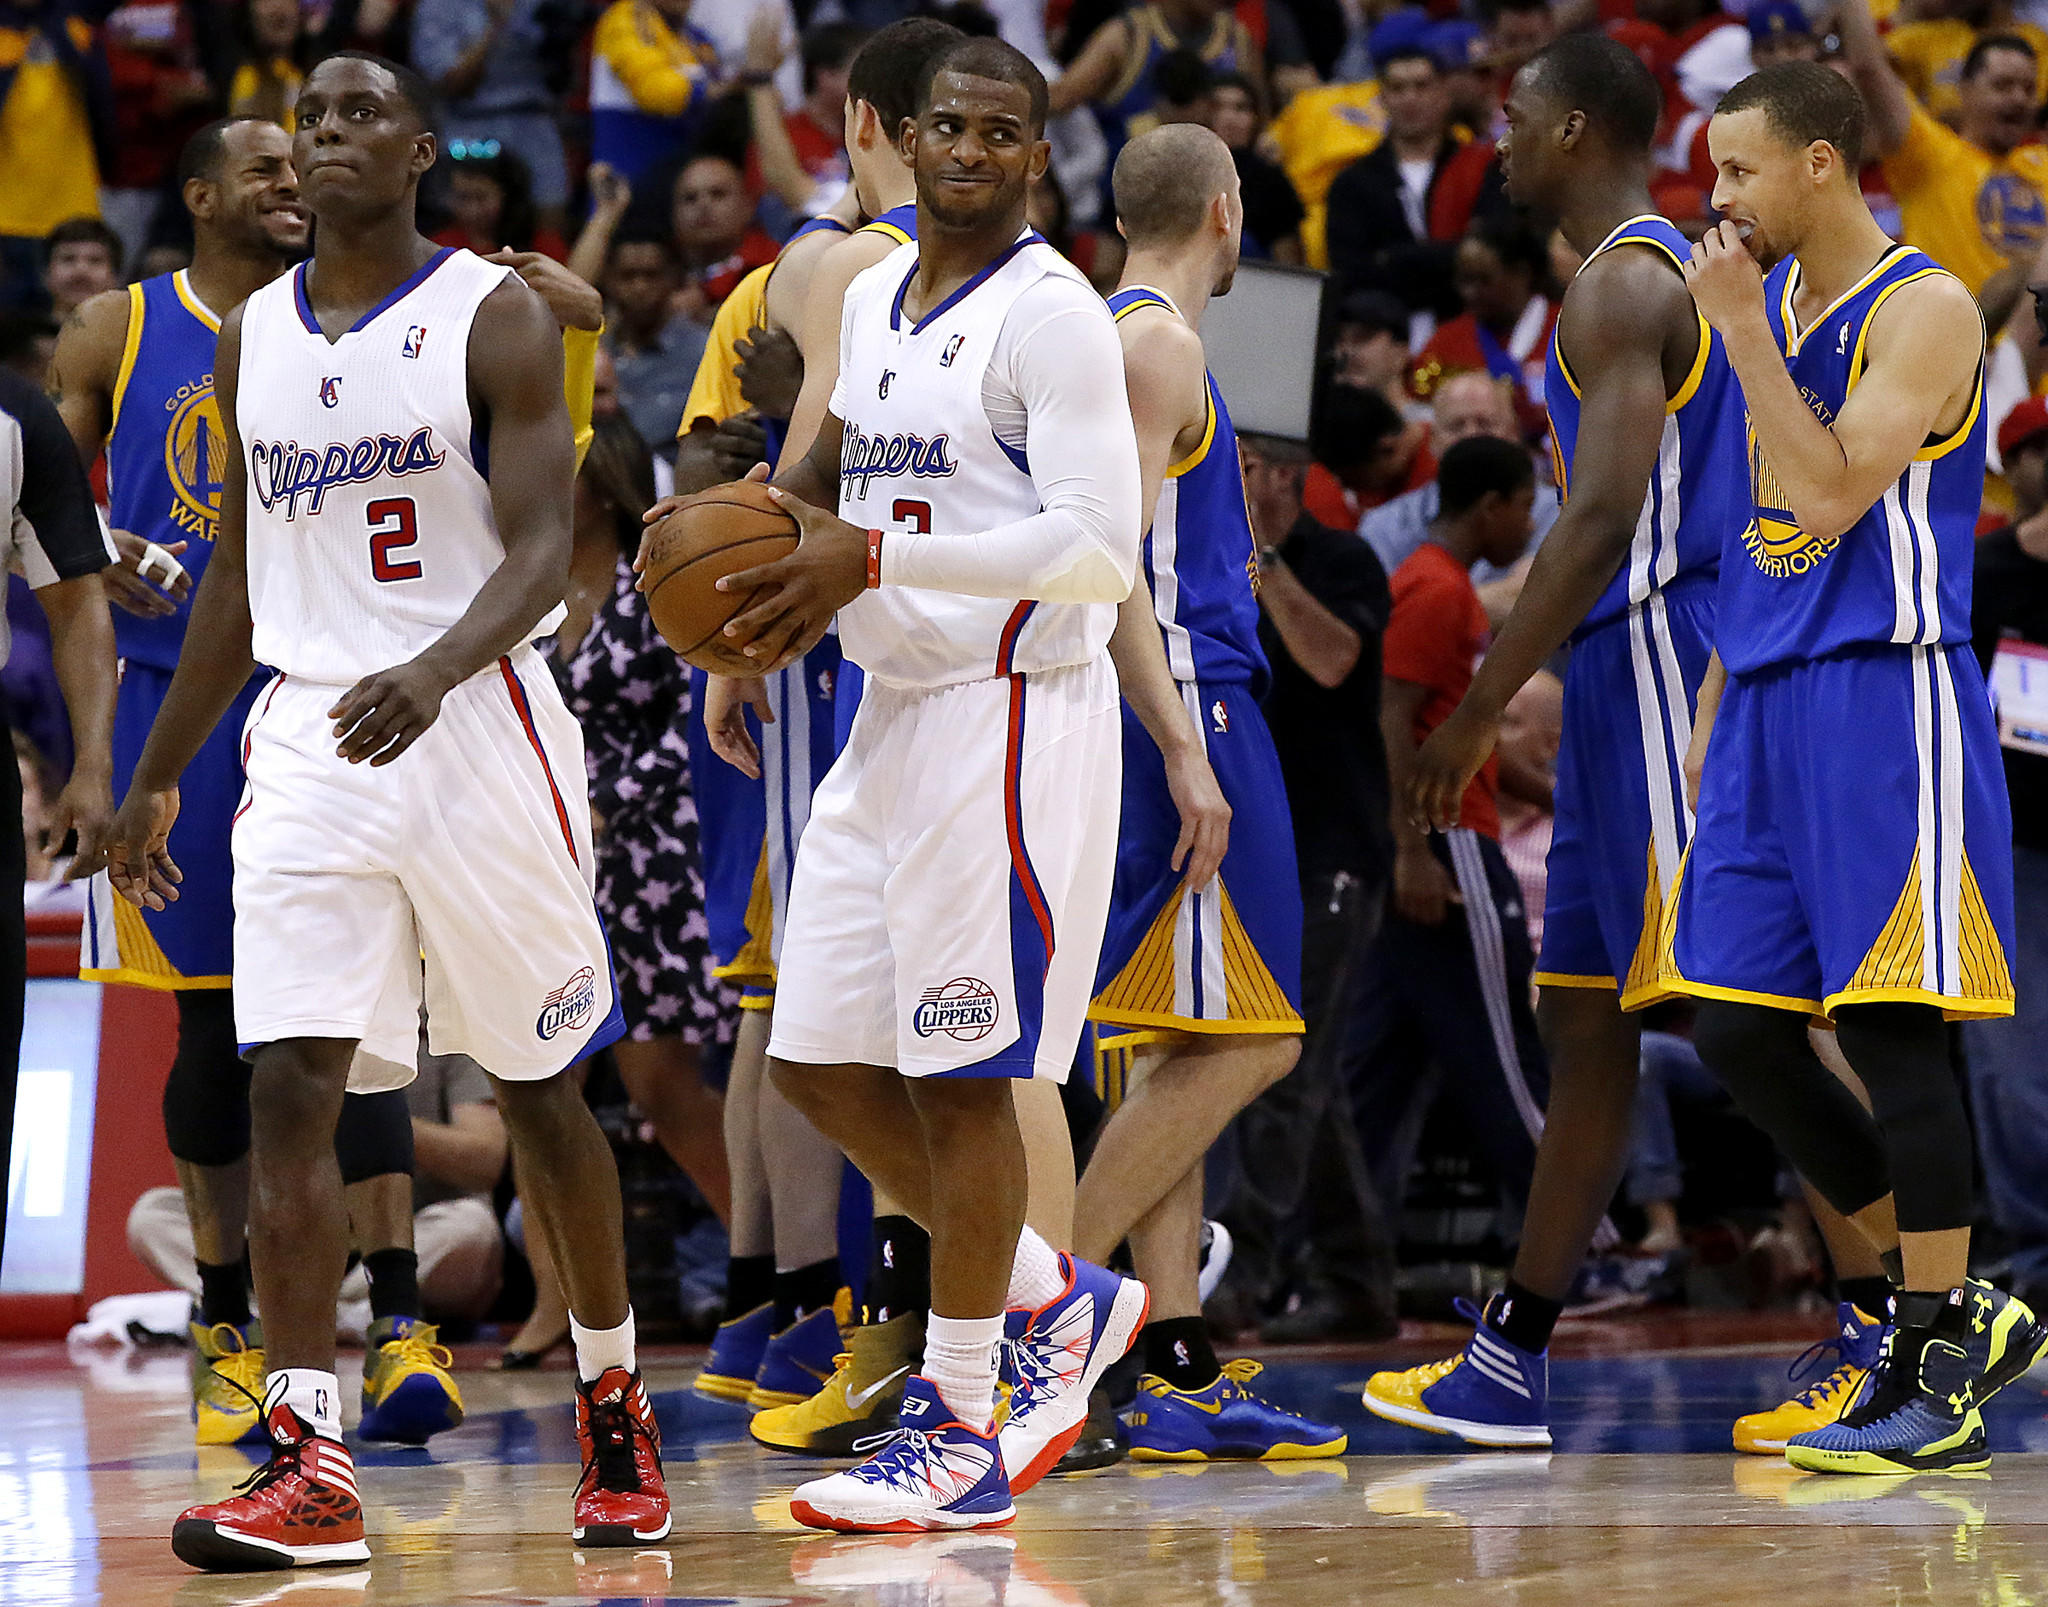 Clippers point guard Chris Paul casts a glance toward referees at the end of a 109-105 loss to the Golden State Warriors in Game 1 of their playoff series on Saturday afternoon at Staples Center.